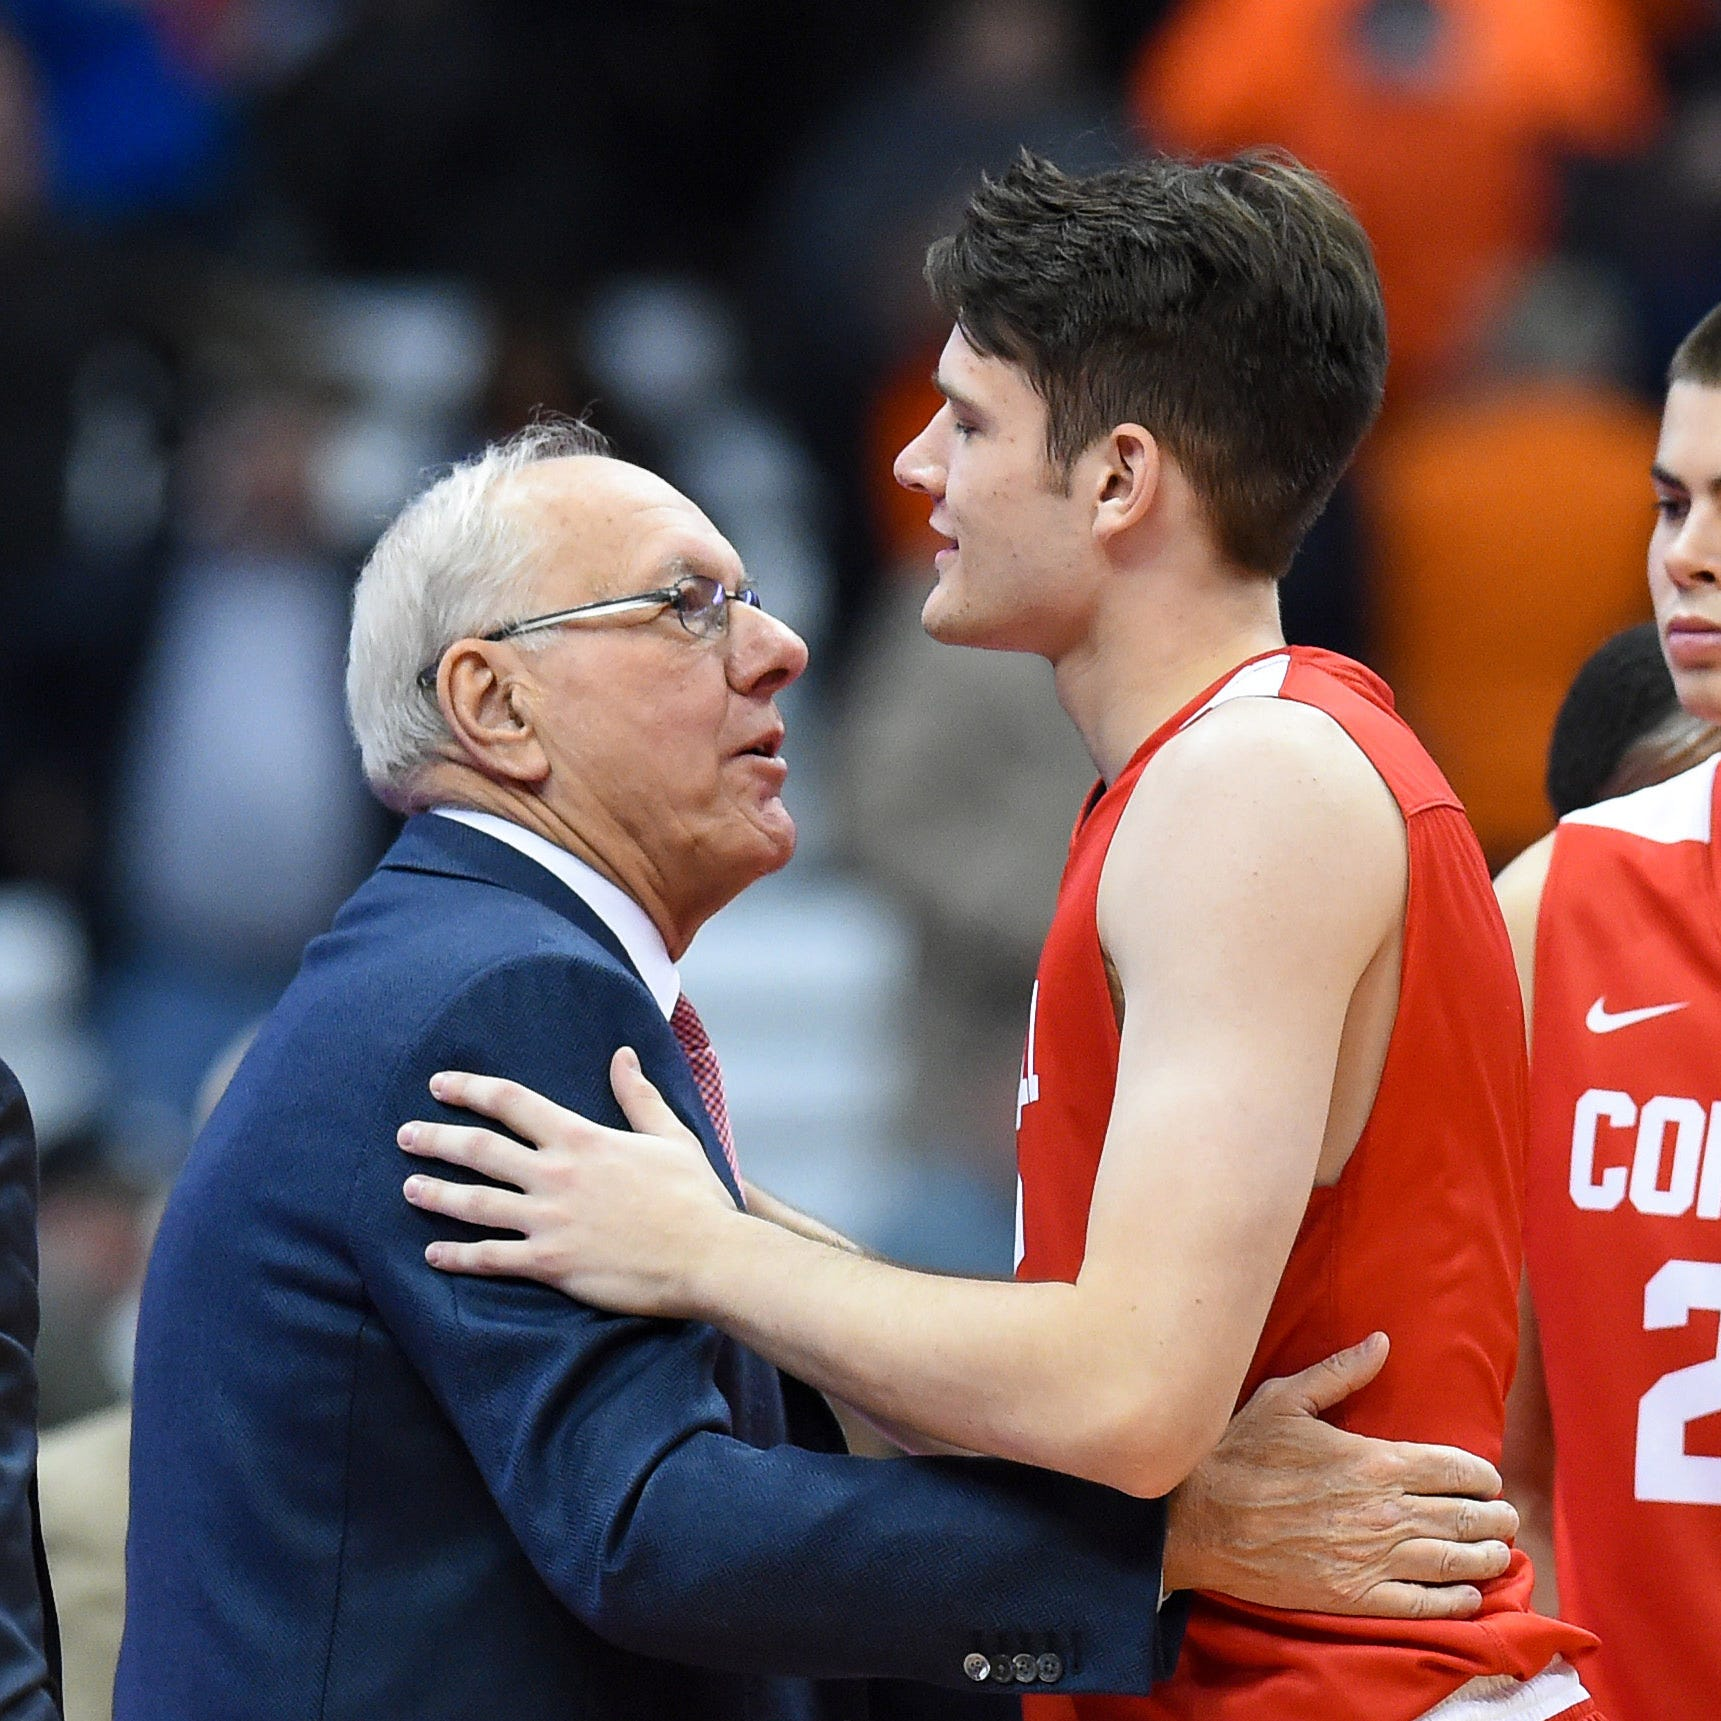 Jimmy Boeheim: 4 things to know about the Cornell basketball player, Jim Boeheim's son